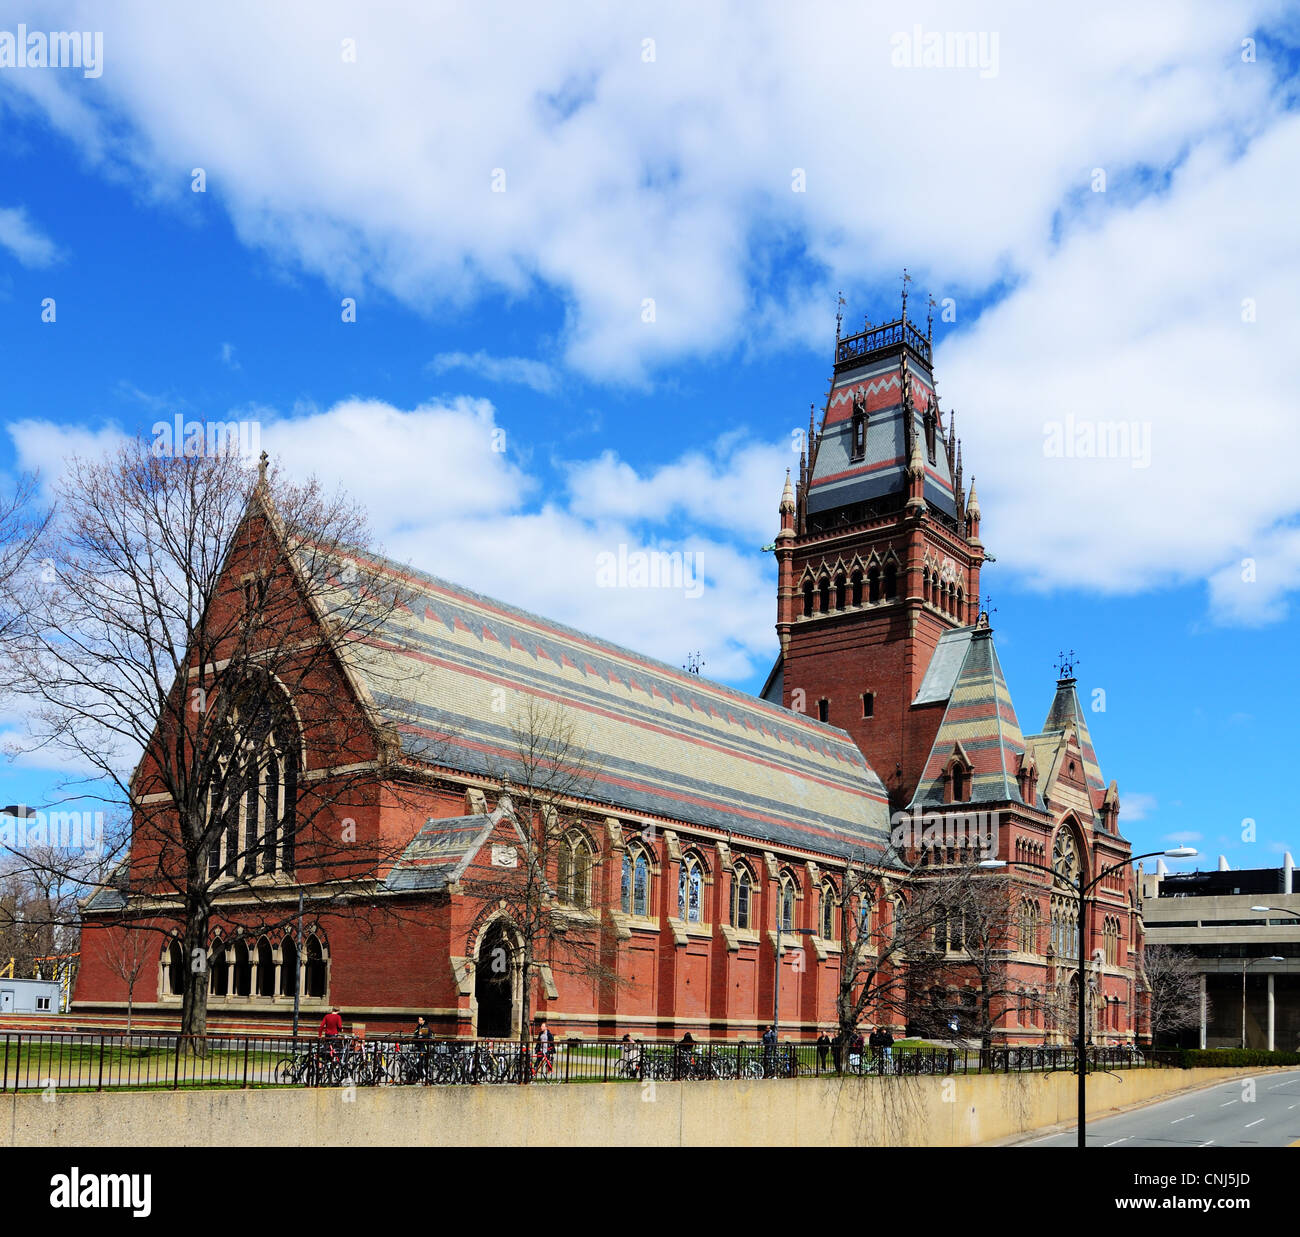 Memorial Hall at Harvard in Cambridge, Massachusetts, USA. - Stock Image